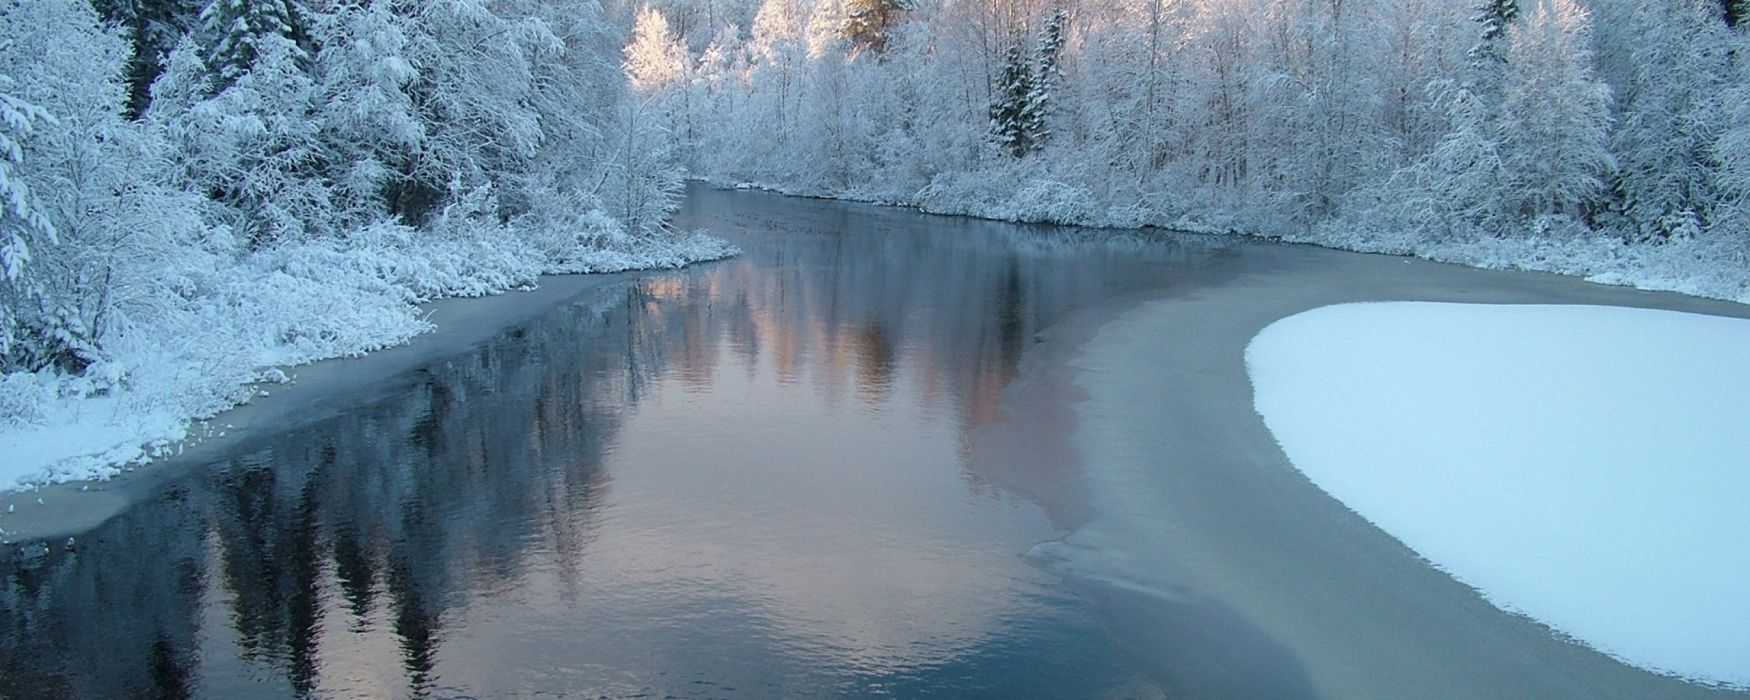 winter snow trees rivers wallpaper